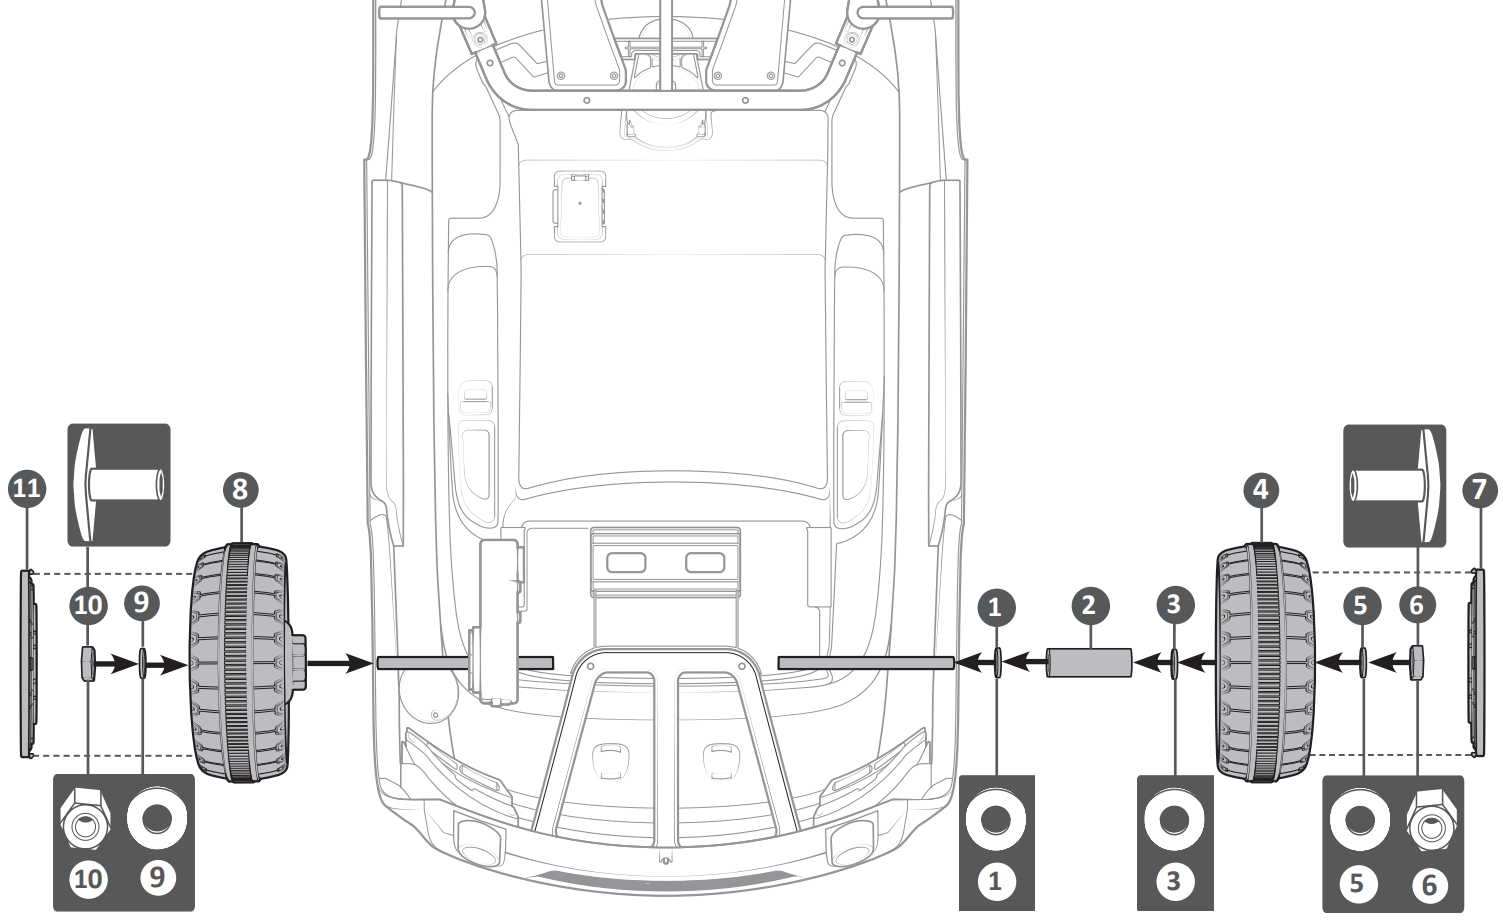 audi tt ride on car back wheel assembly illustration